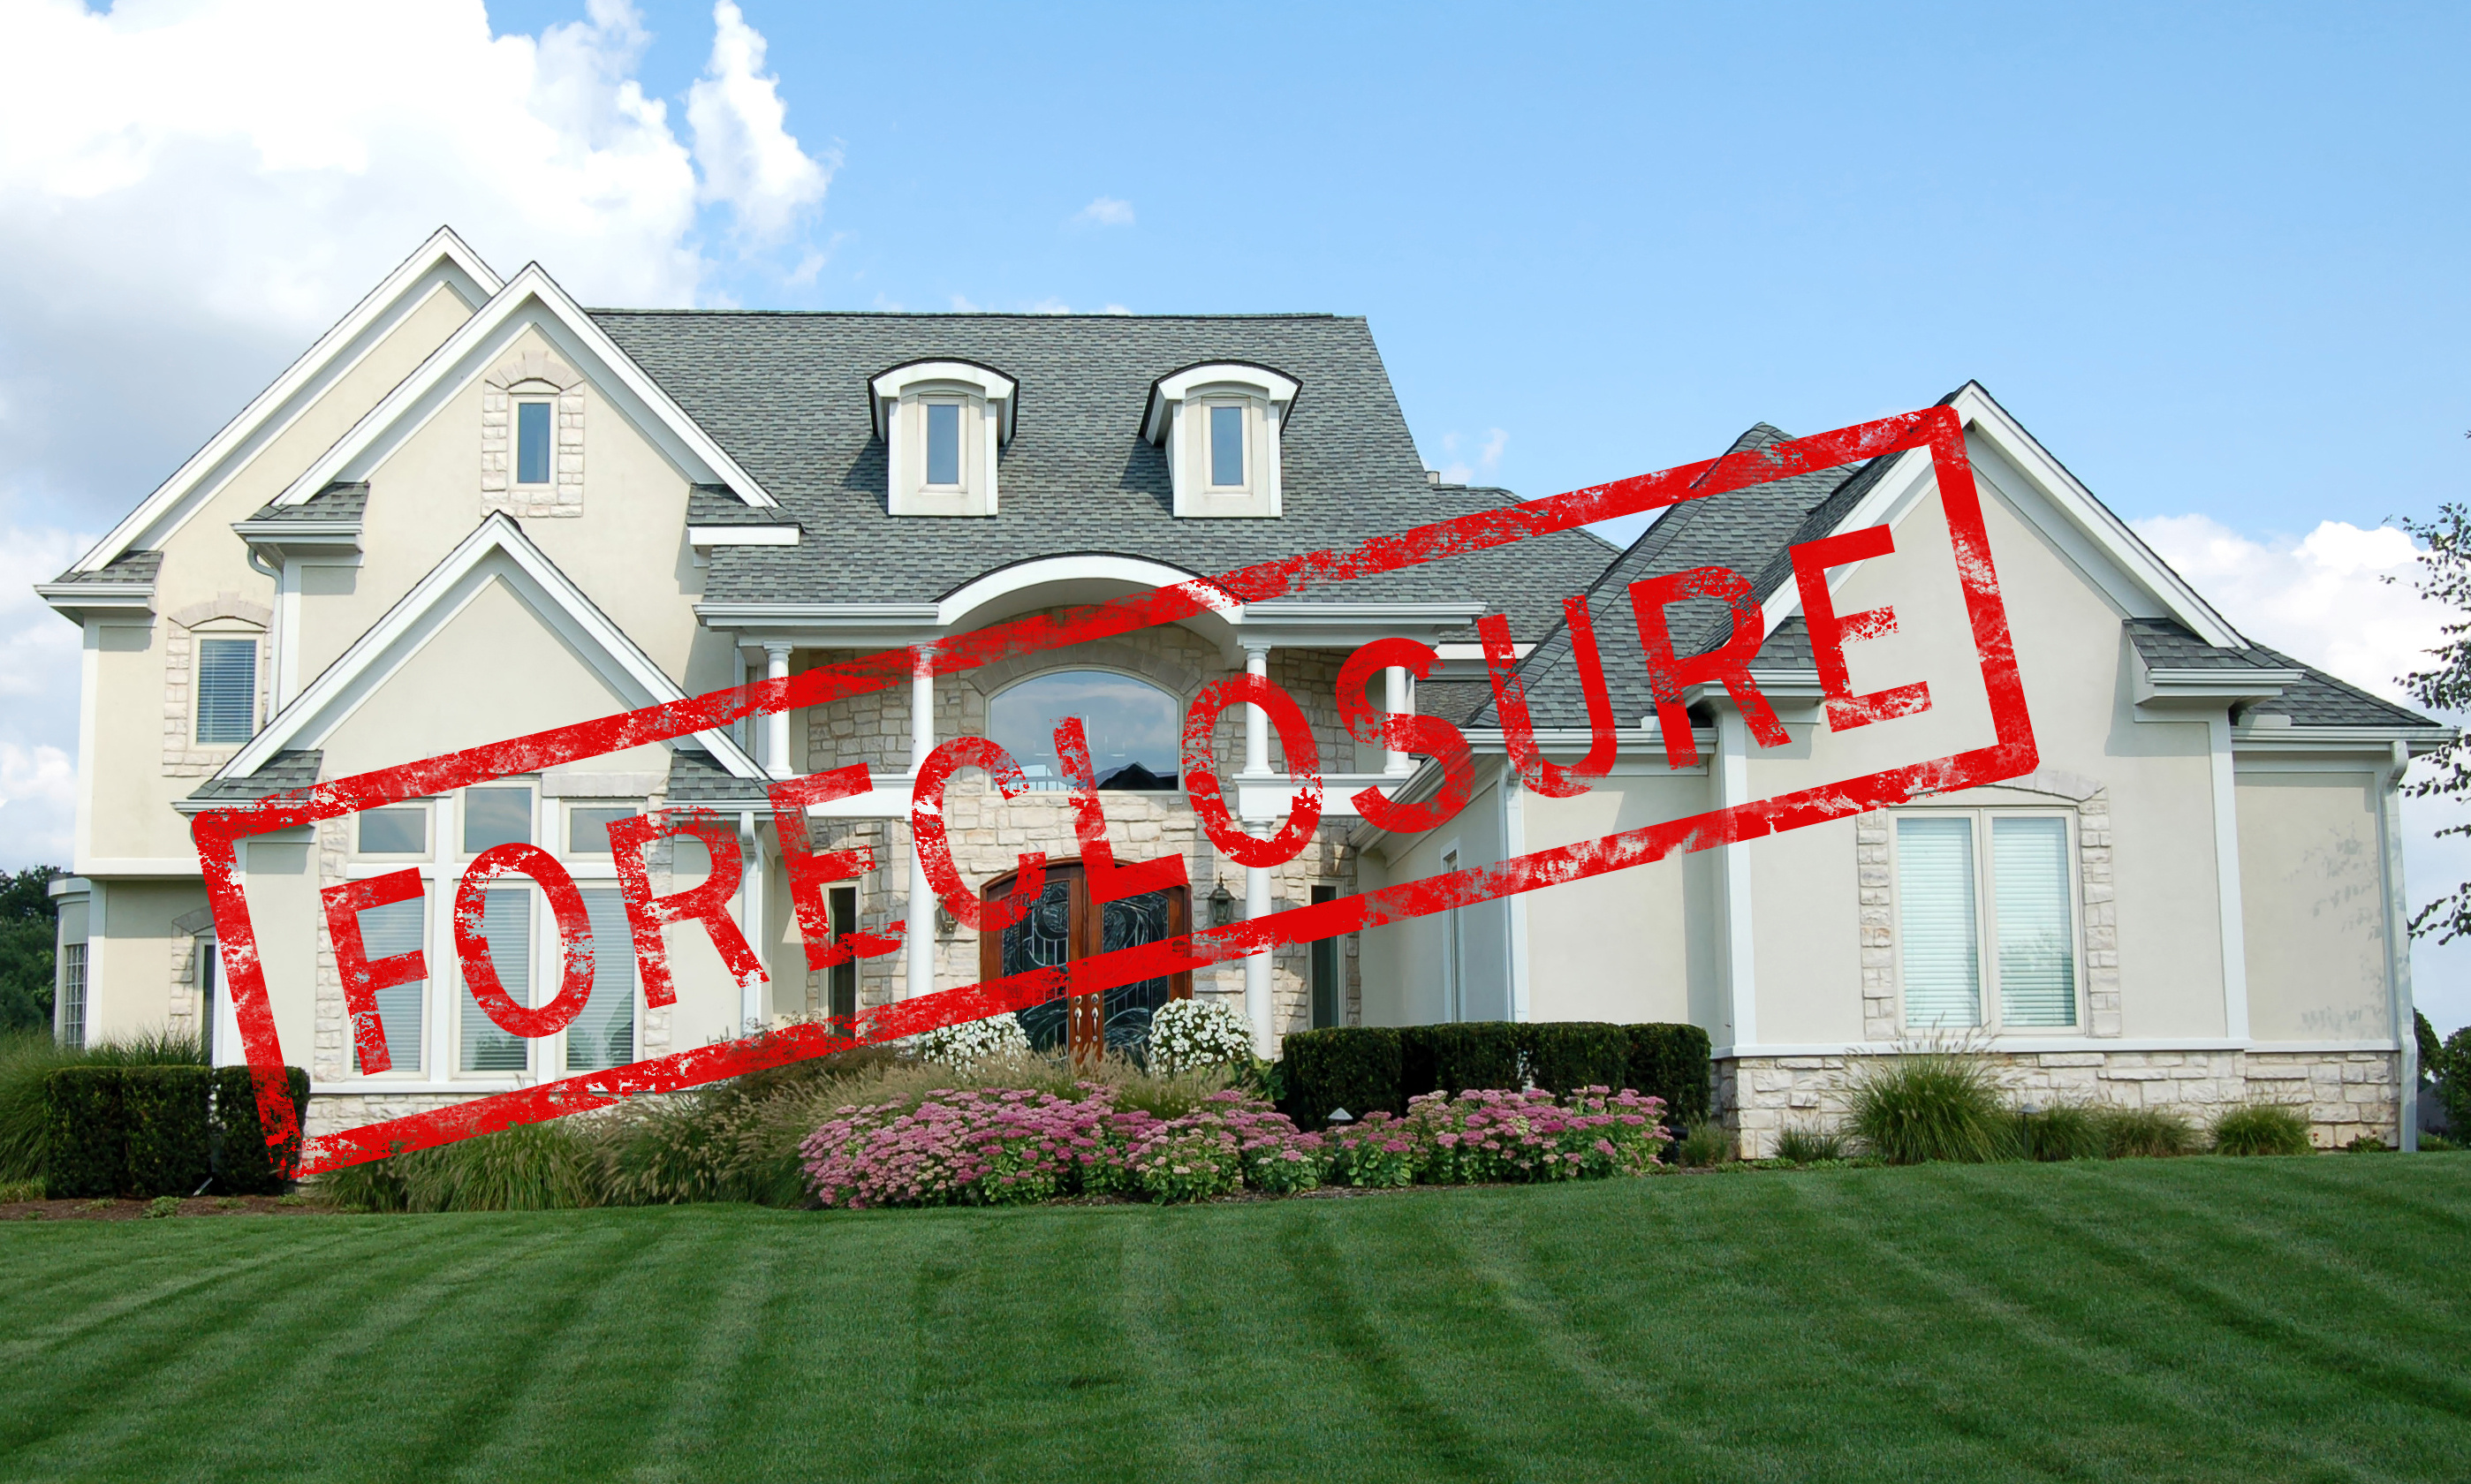 Call Gregory James Company, Inc. when you need appraisals of Polk foreclosures